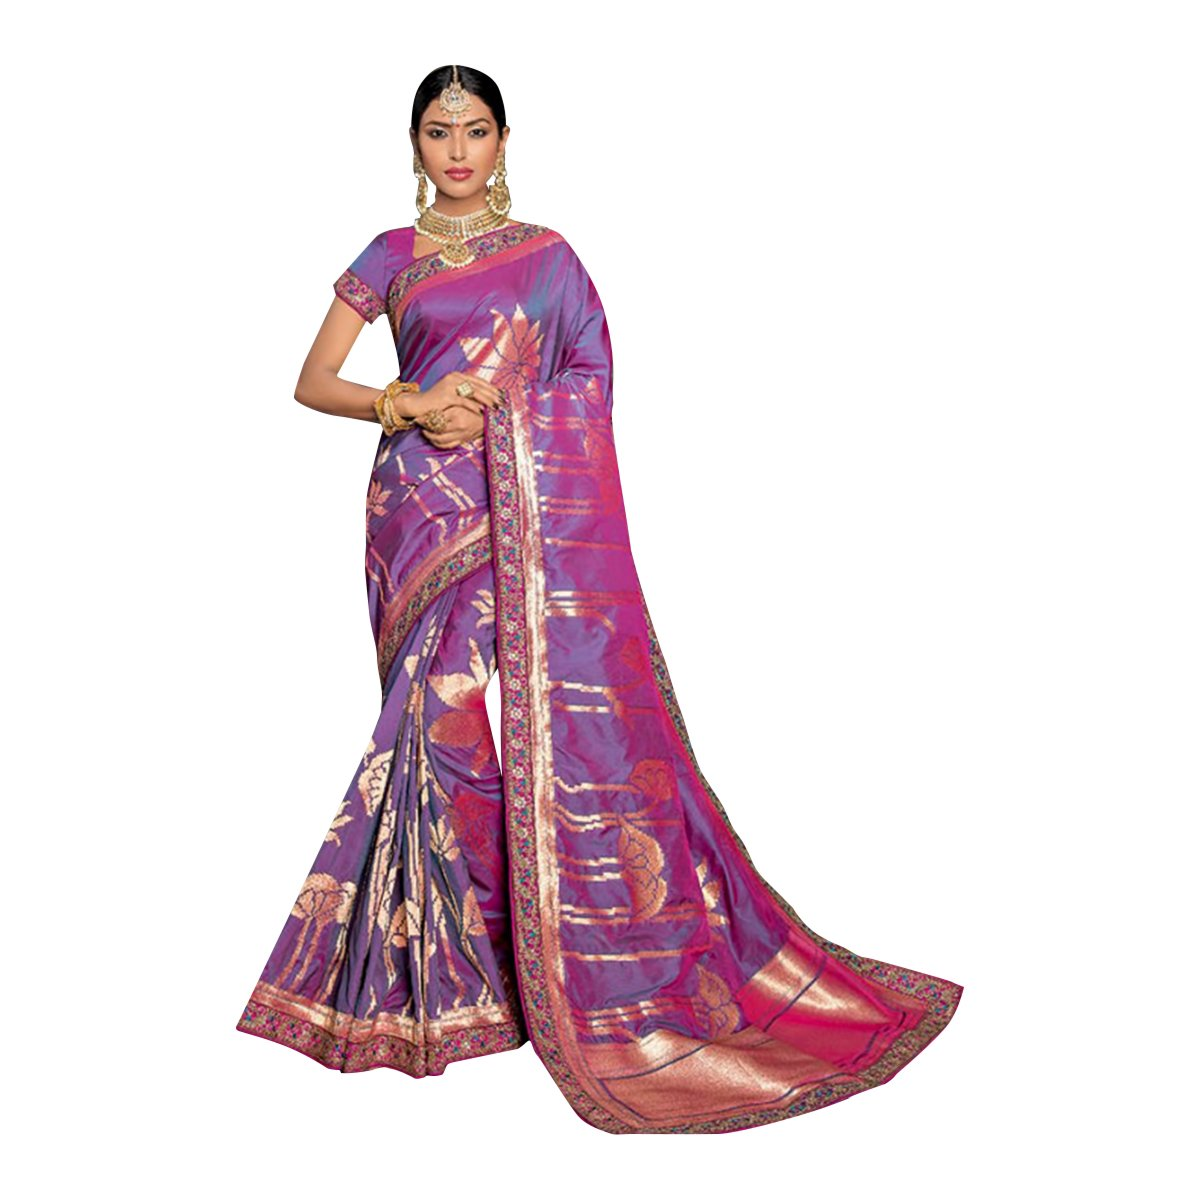 BOLLYWOOD DESIGNER TRADITIONAL SILK SAREE SARI BLOUSE WEDDING CEREMONY PARTY WEAR INDIAN WOMEN ETHNIC EMPORIUM 341